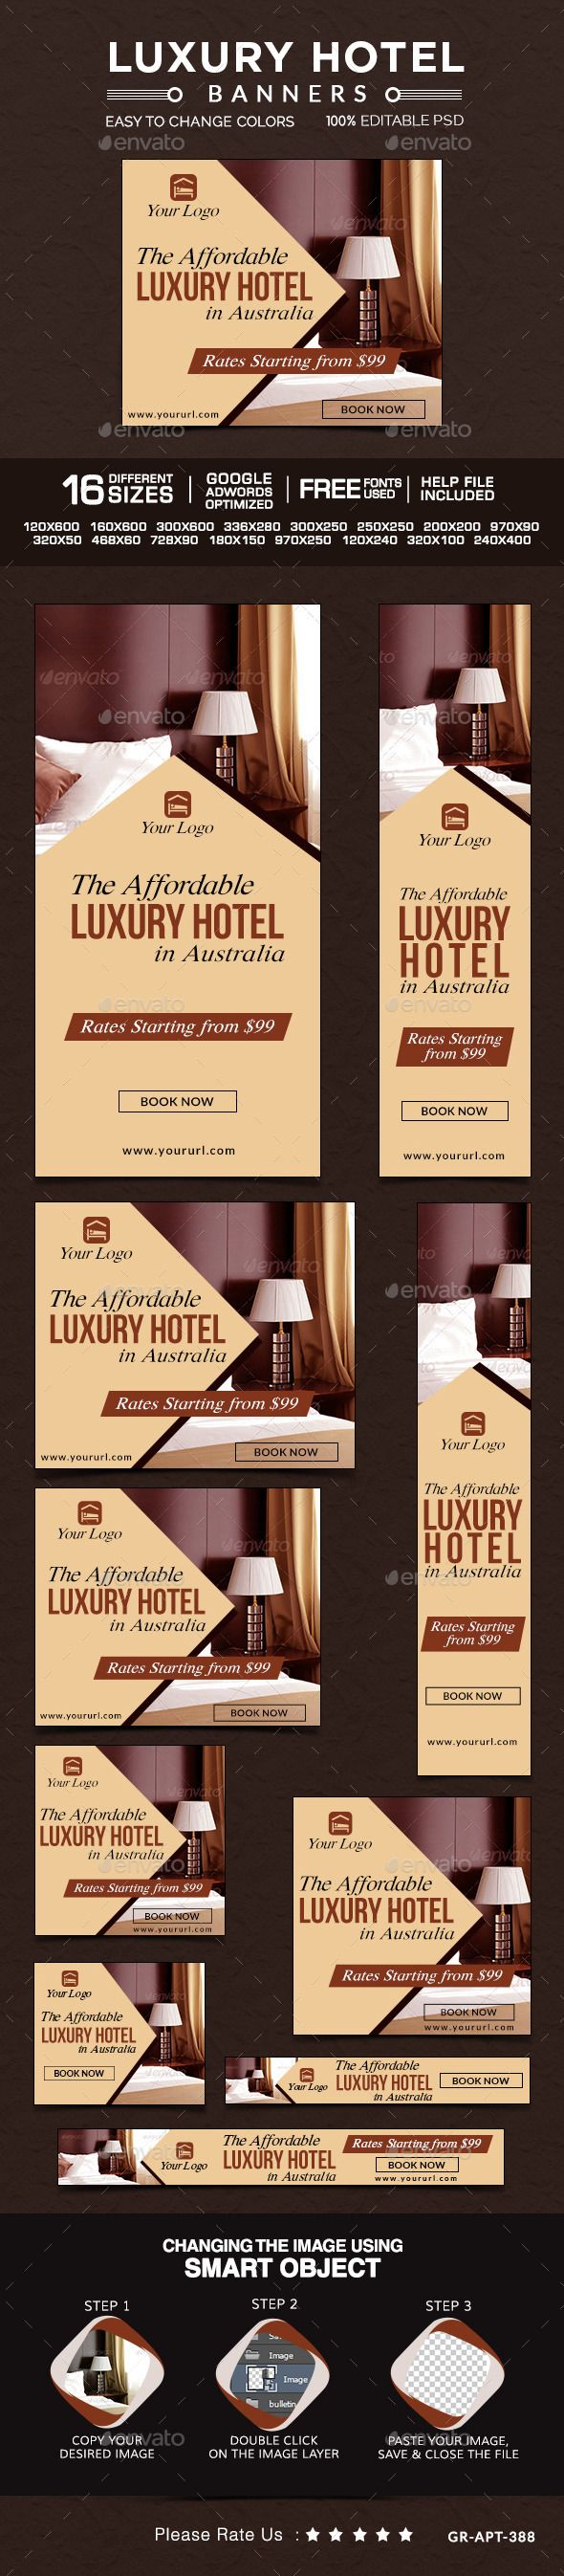 Hotel Banners | #hotelbanners #webbanners | Download: http://graphicriver.net/item/hotel-banners/10469793?ref=ksioks